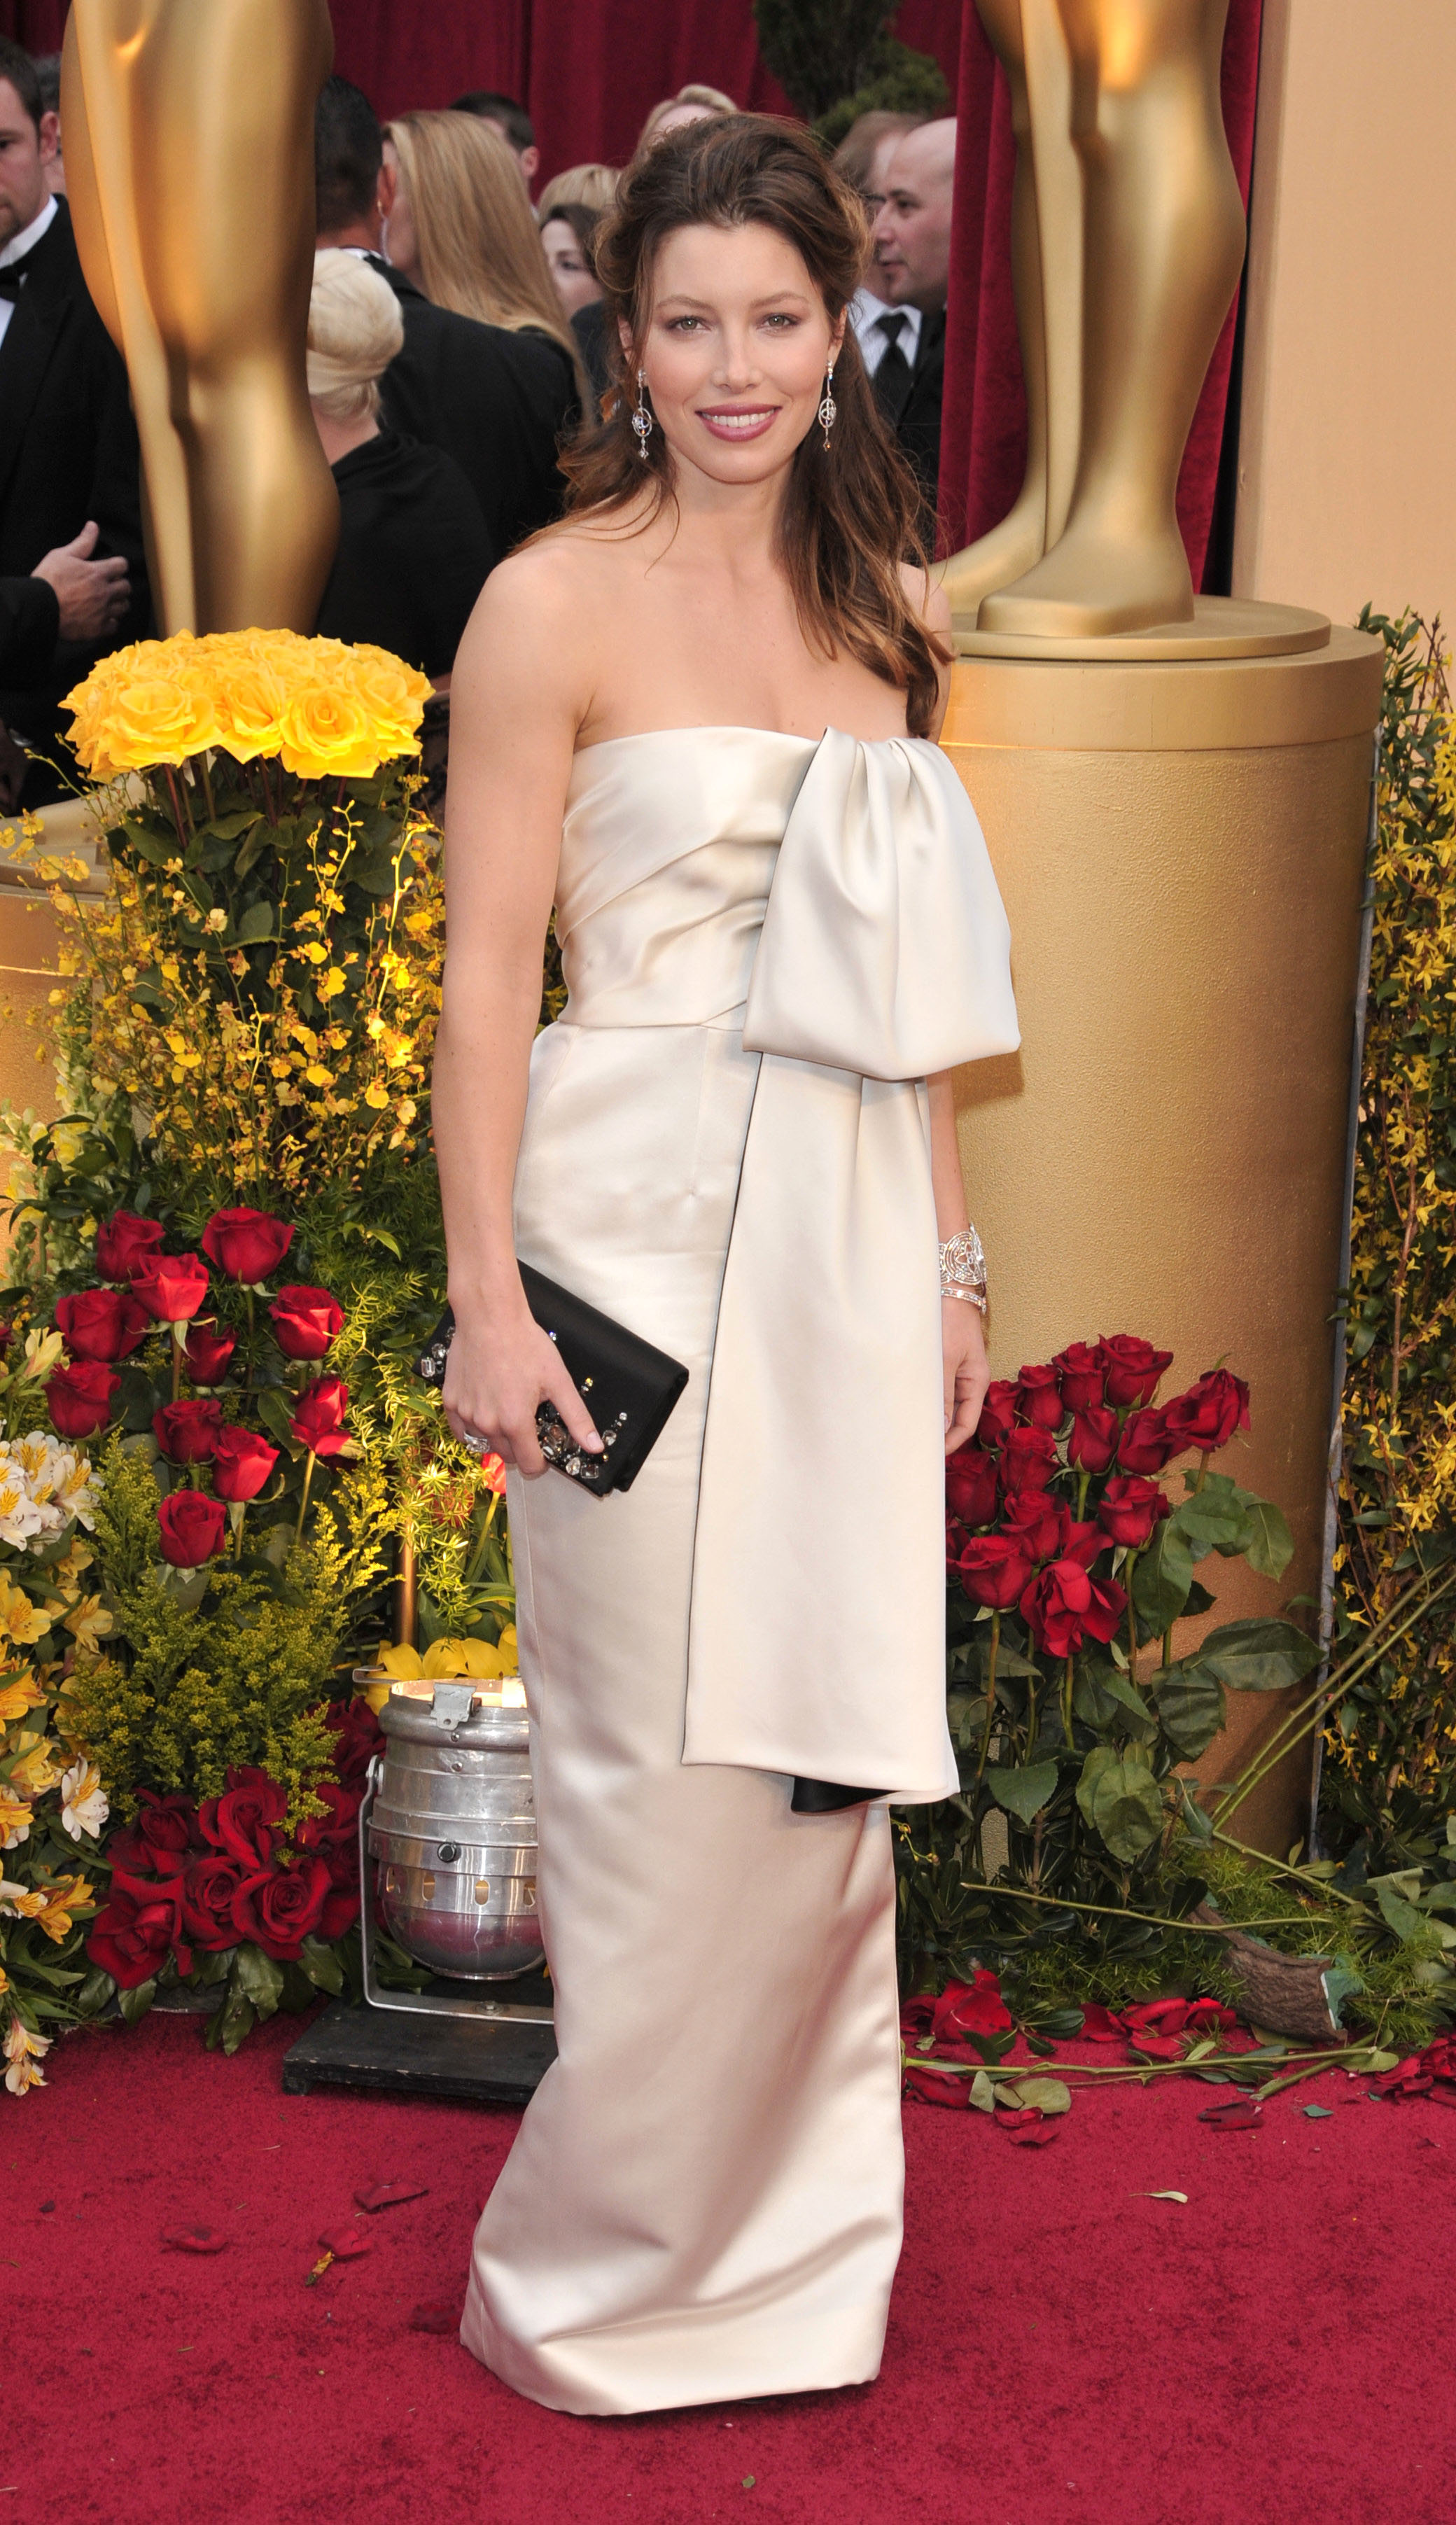 Jessica Biel attends the 81st Annual Academy Awards in Los Angeles on Feb. 22, 2009.